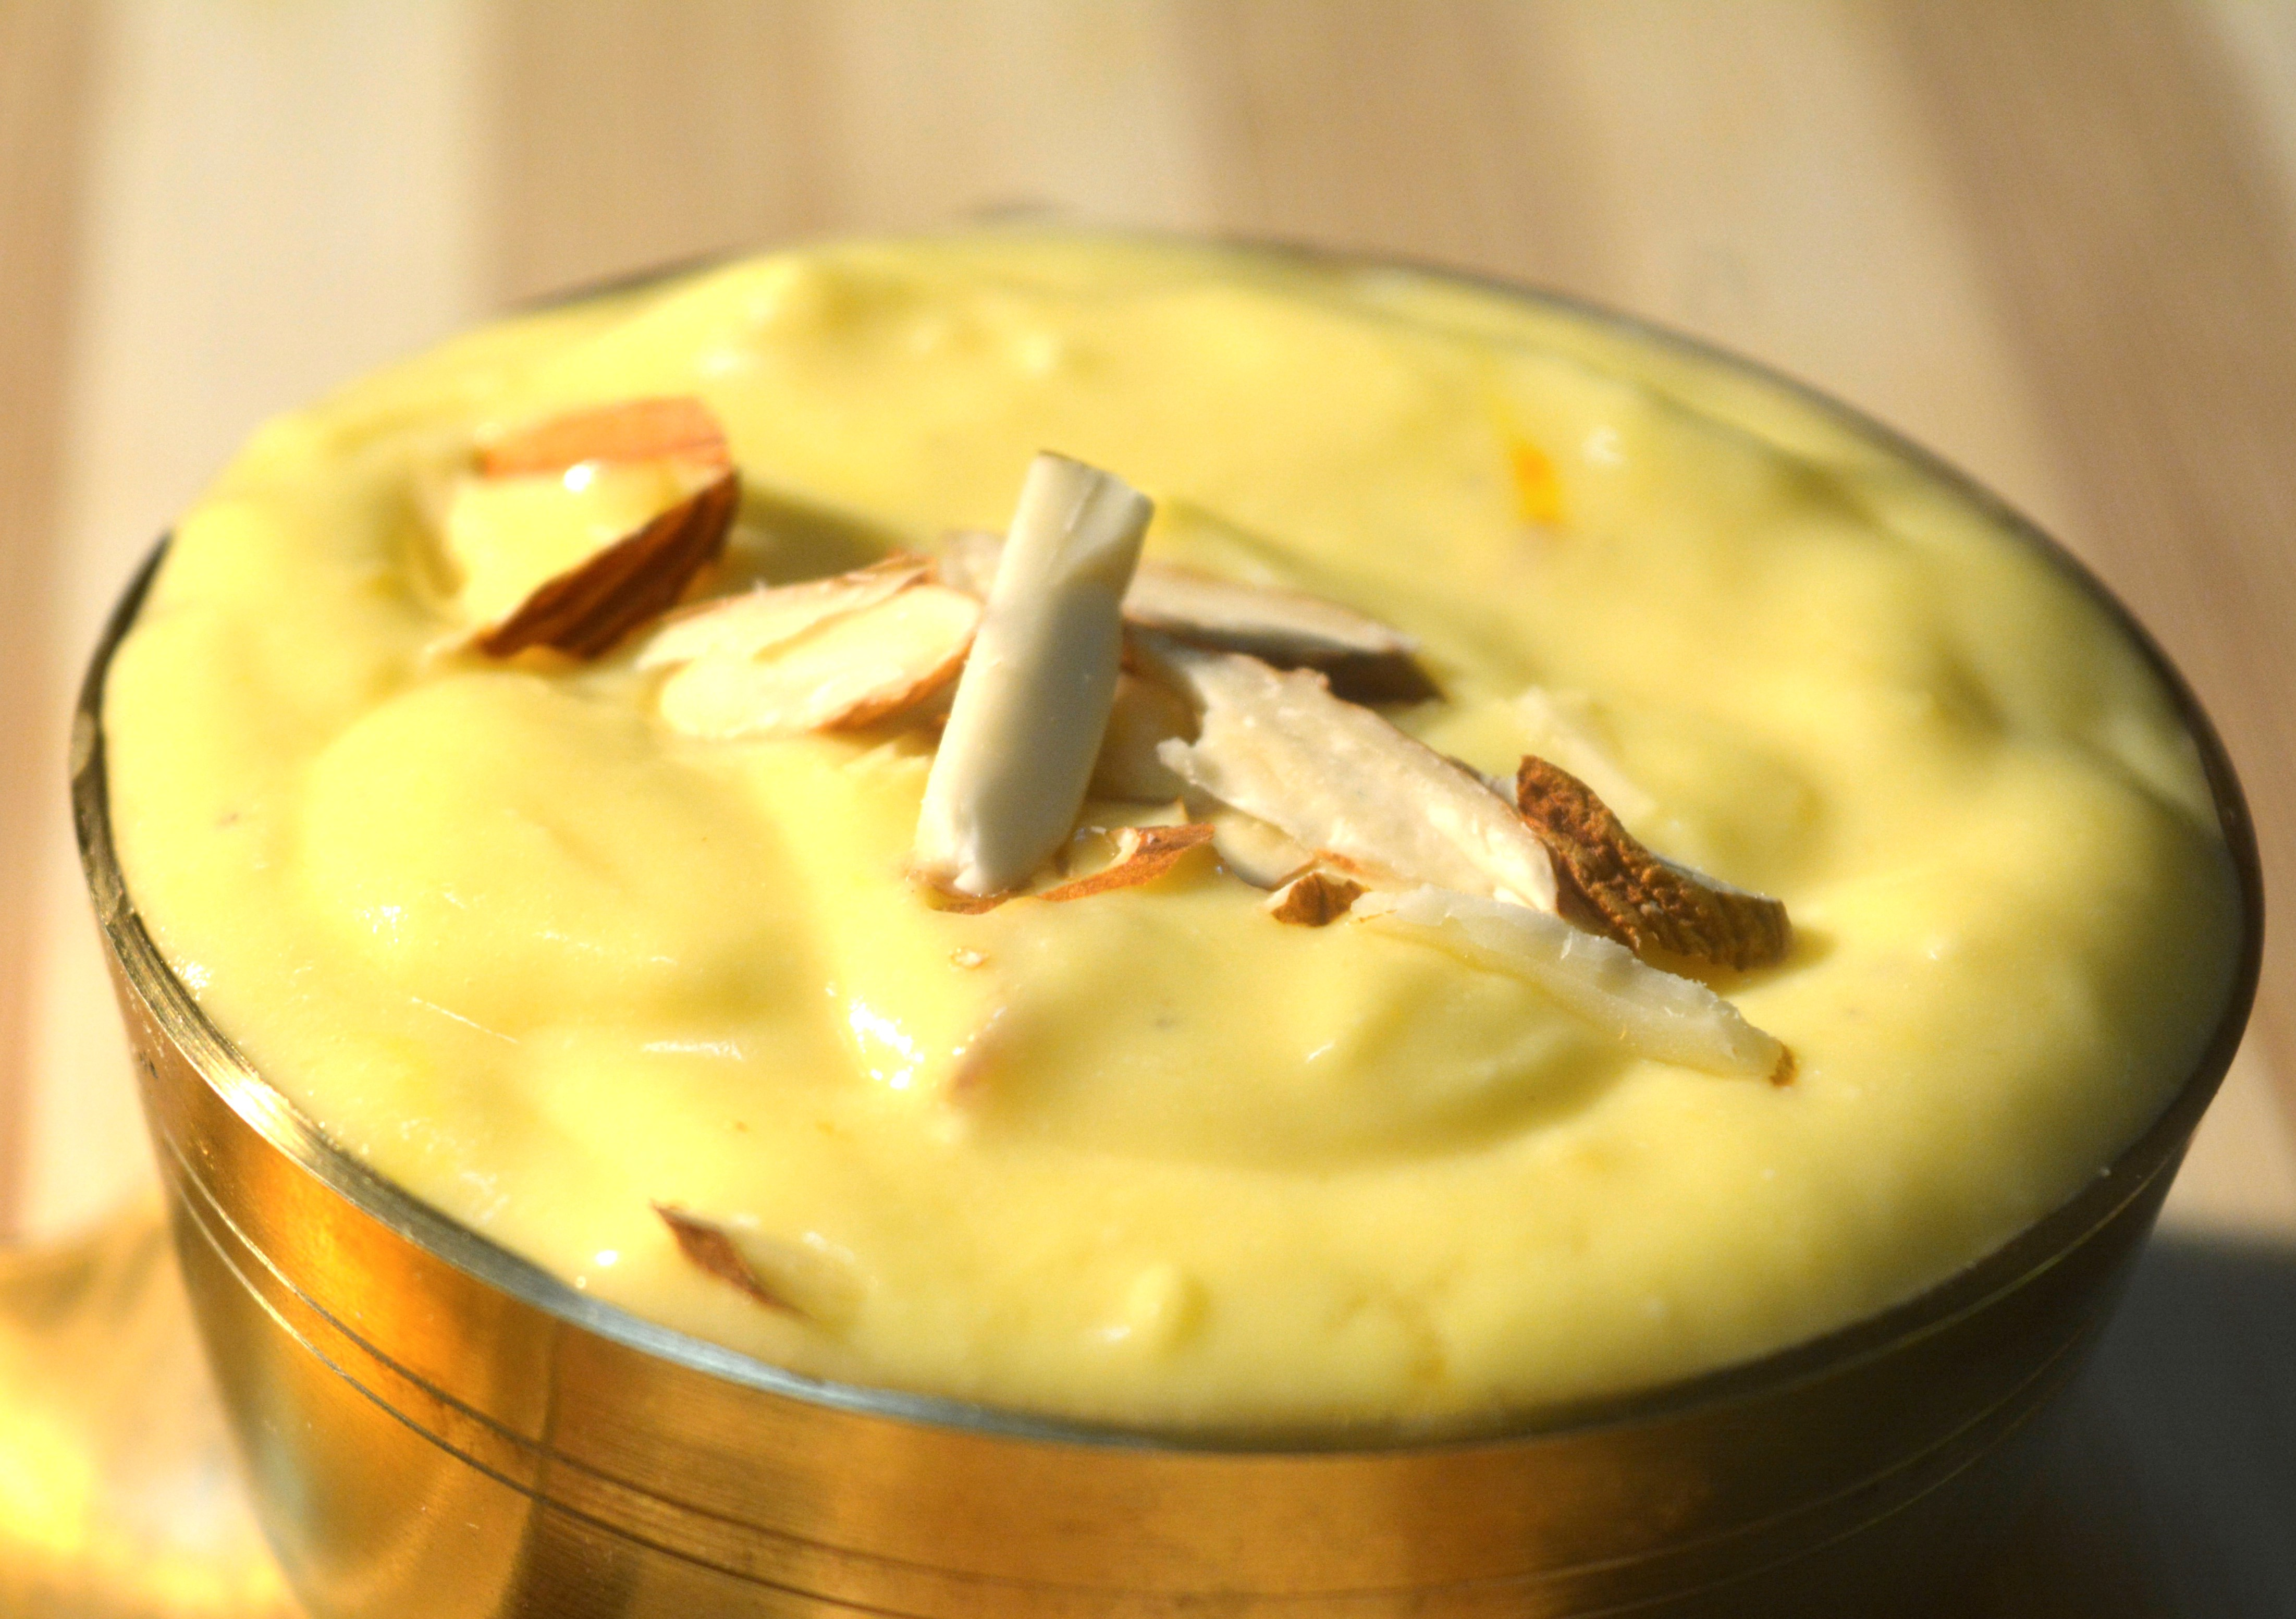 Fermented Milk Products from All Over the World. Shrikhand (India)